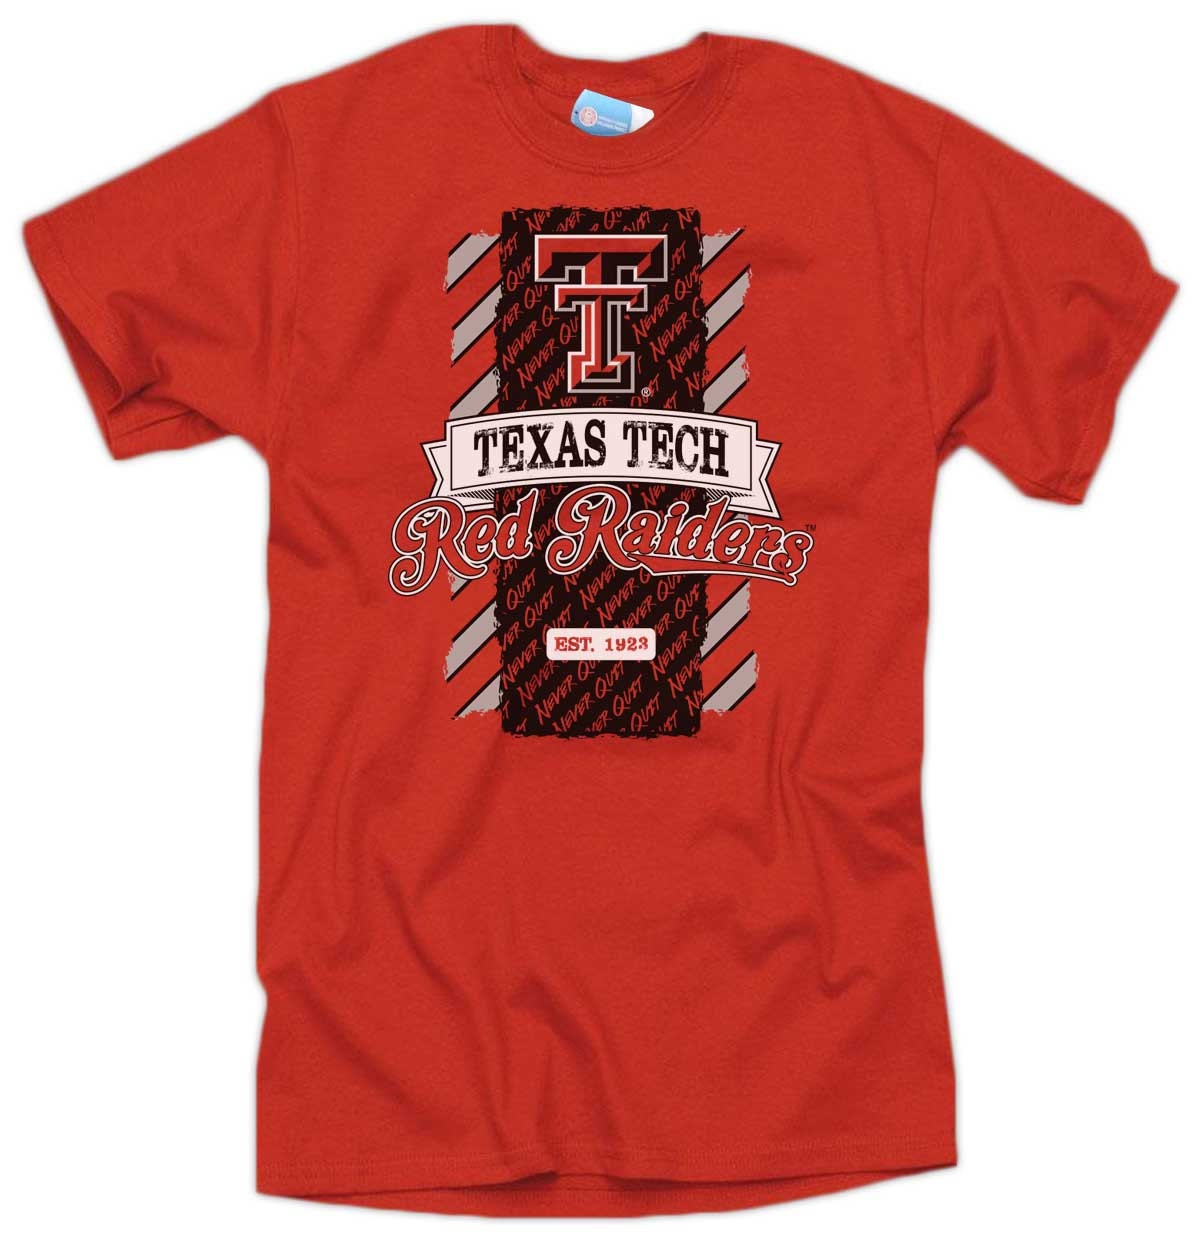 Items Similar To Texas Tech Never Quit T Shirt Red Texas